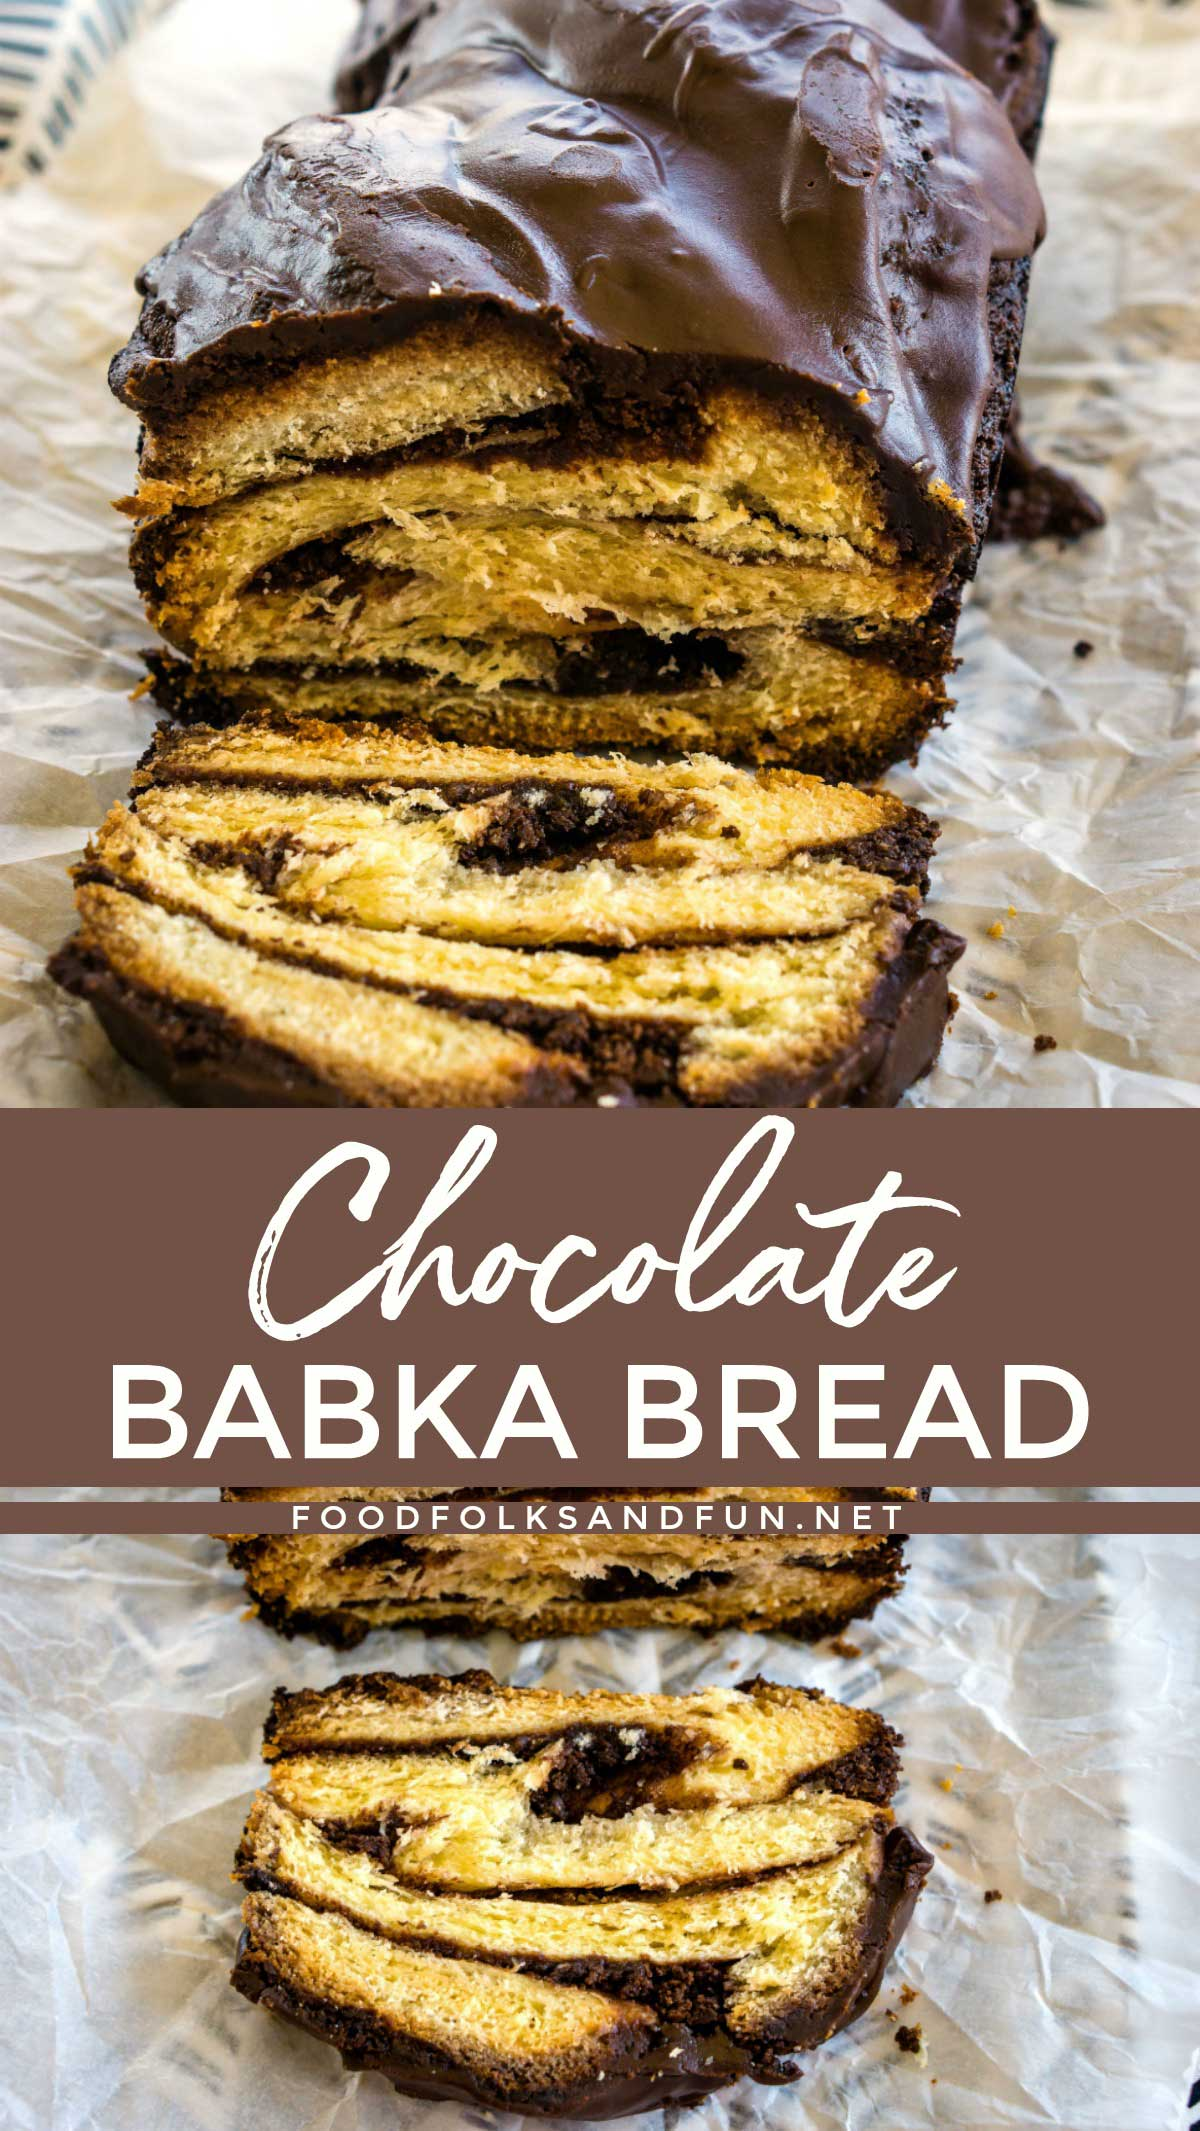 Chocolate Babka Bread with a slice cut from it and text overlay for Pinterest